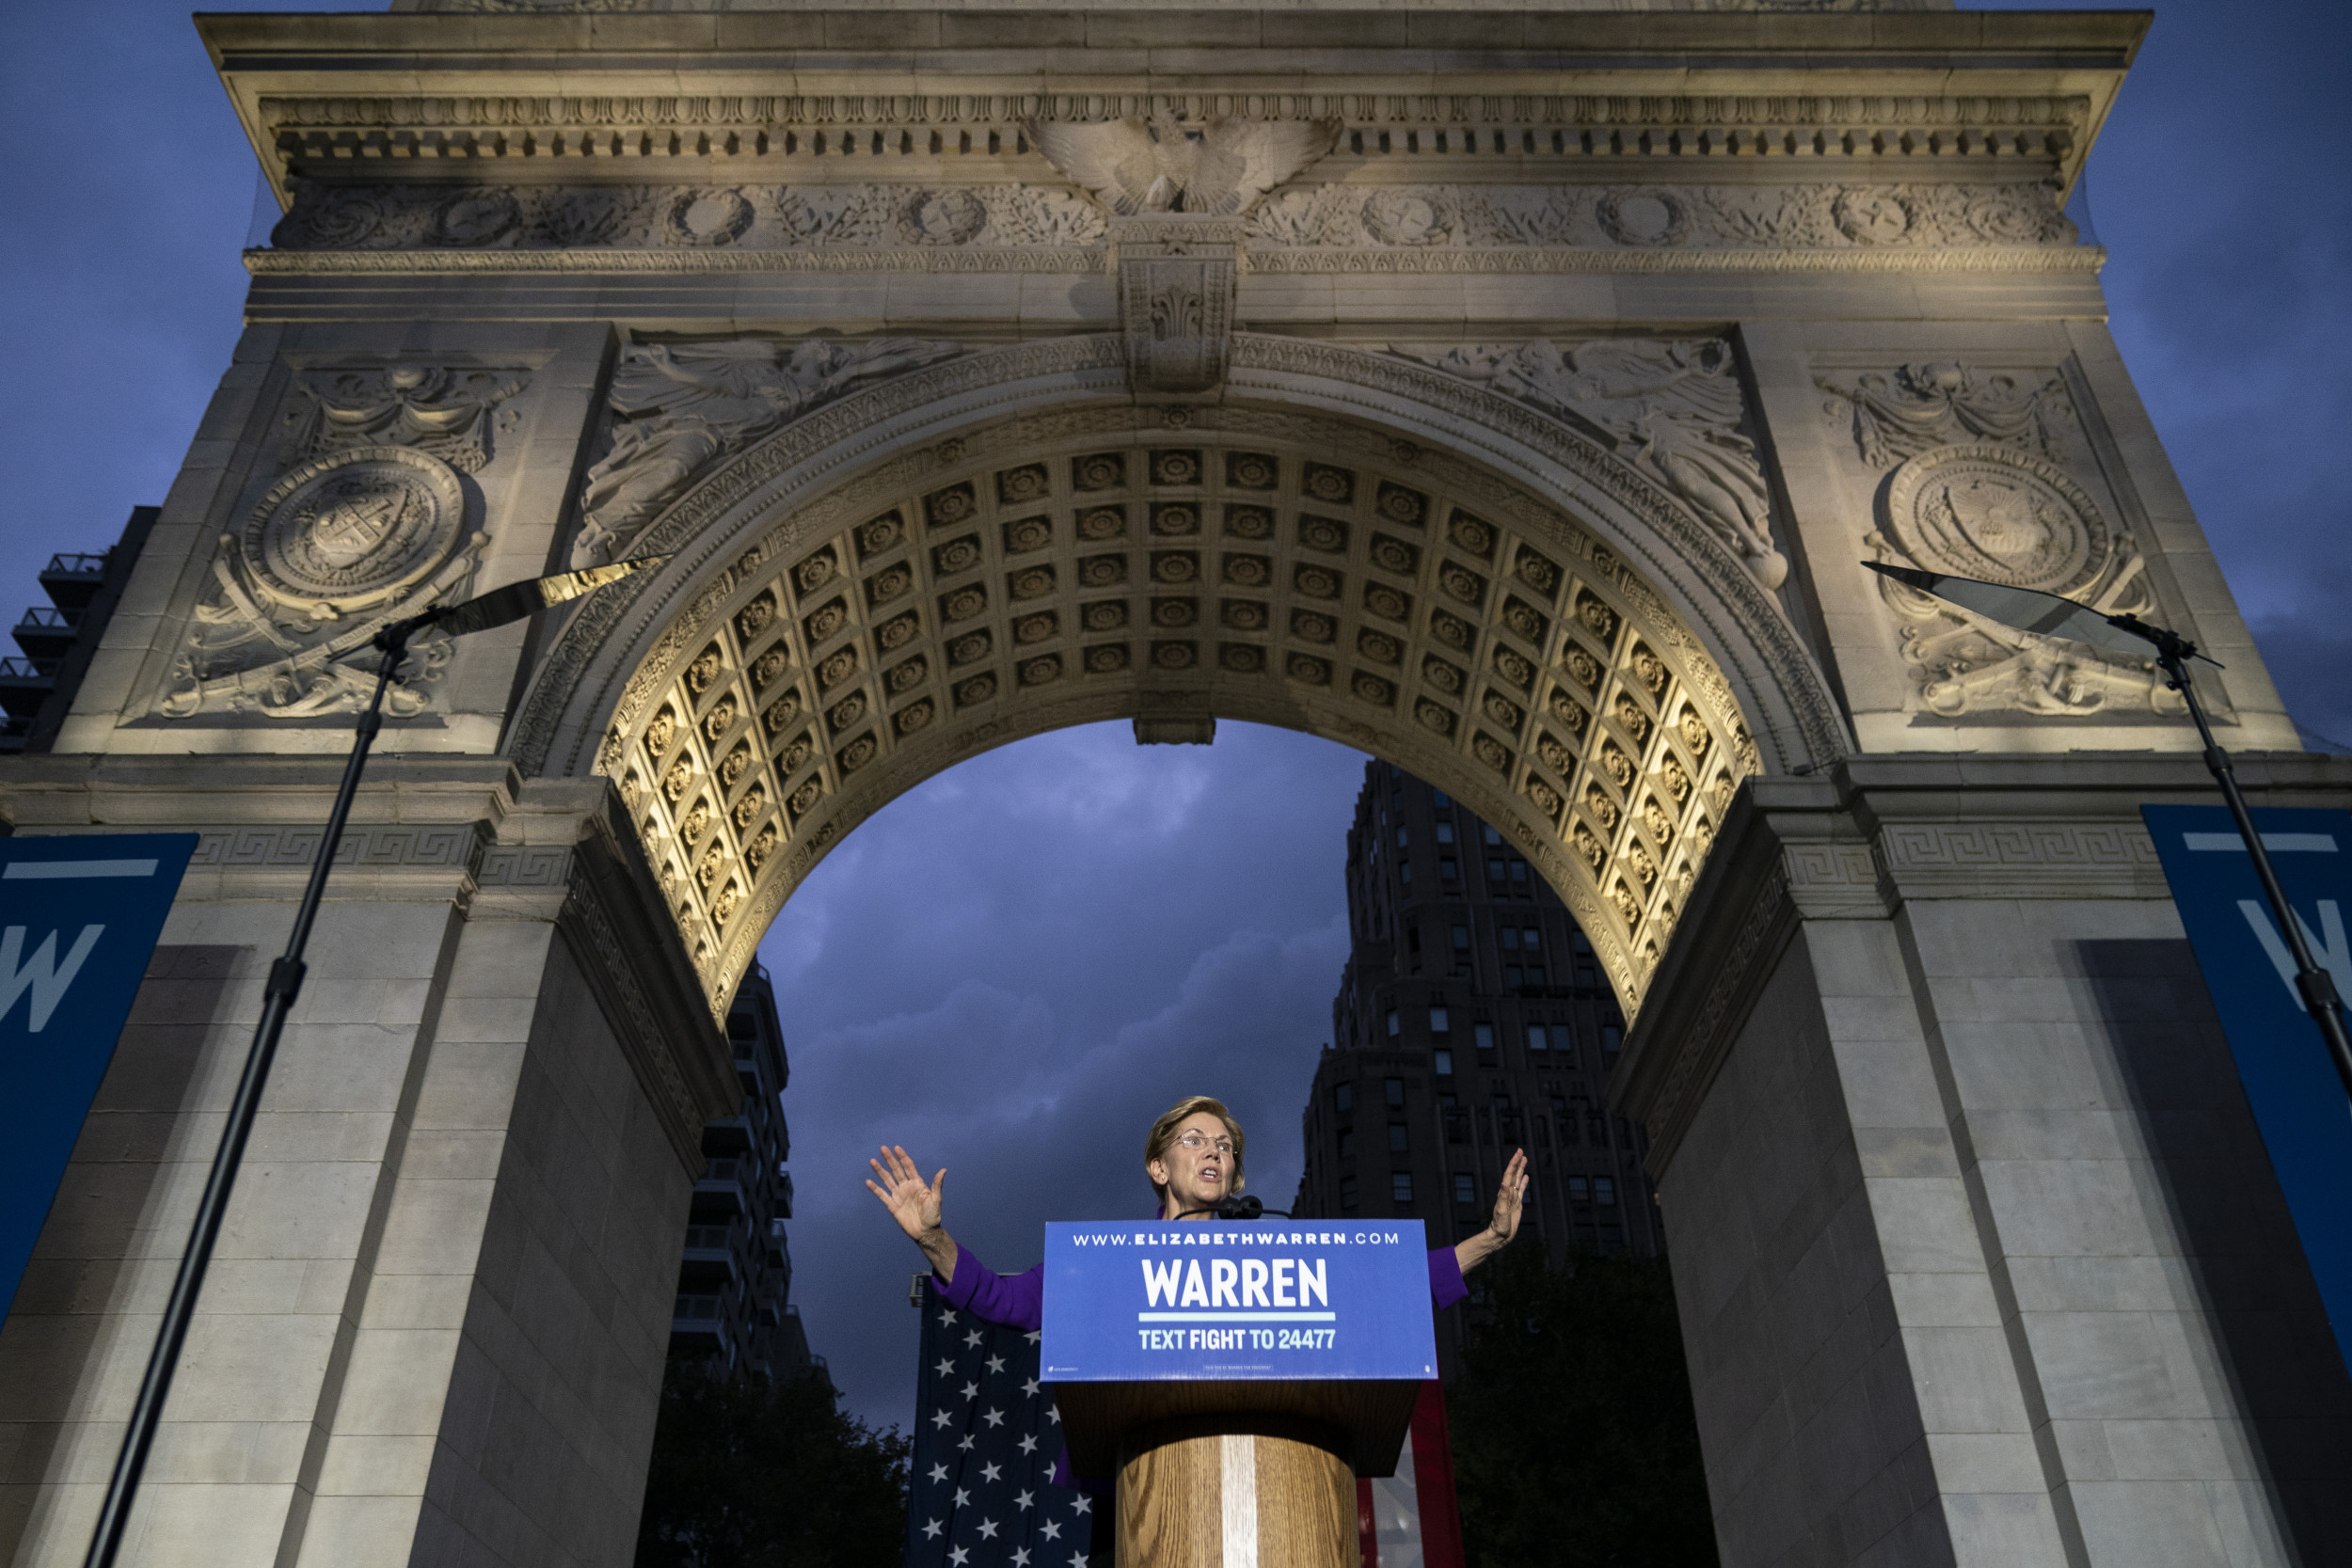 Elizabeth Warren campaigns in New York